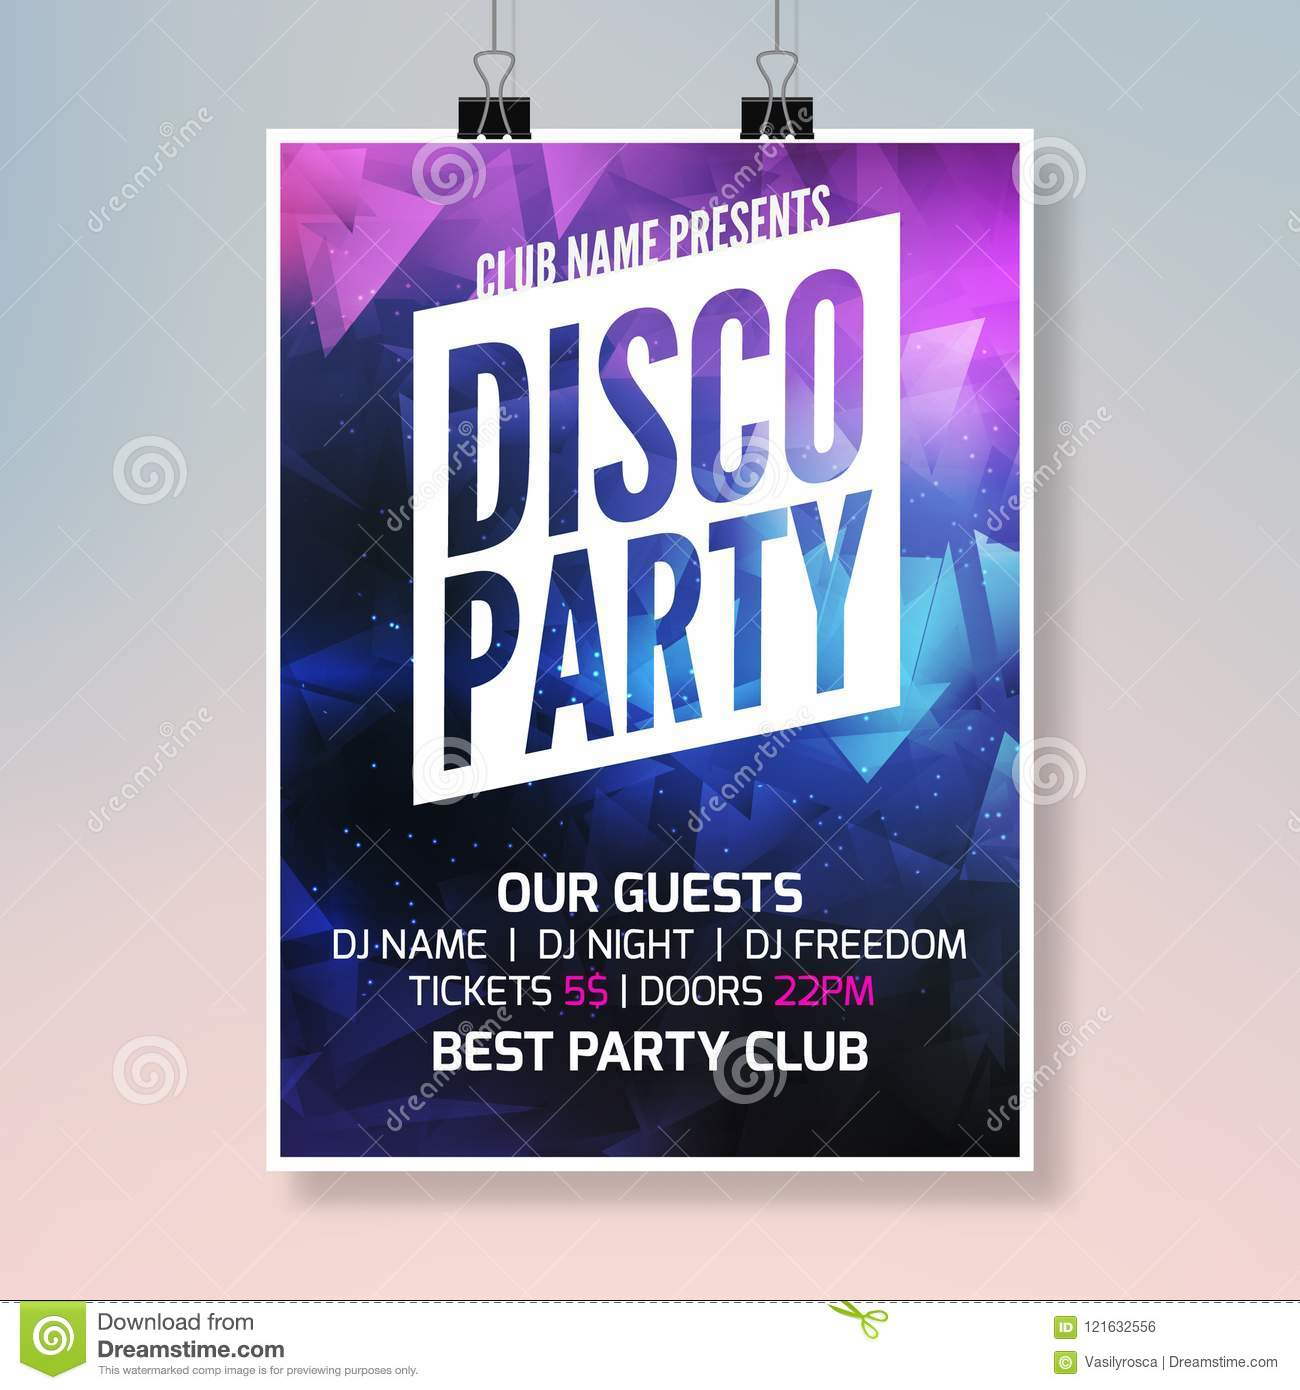 Disco Sound Music Party Template, Dance Party Flyer